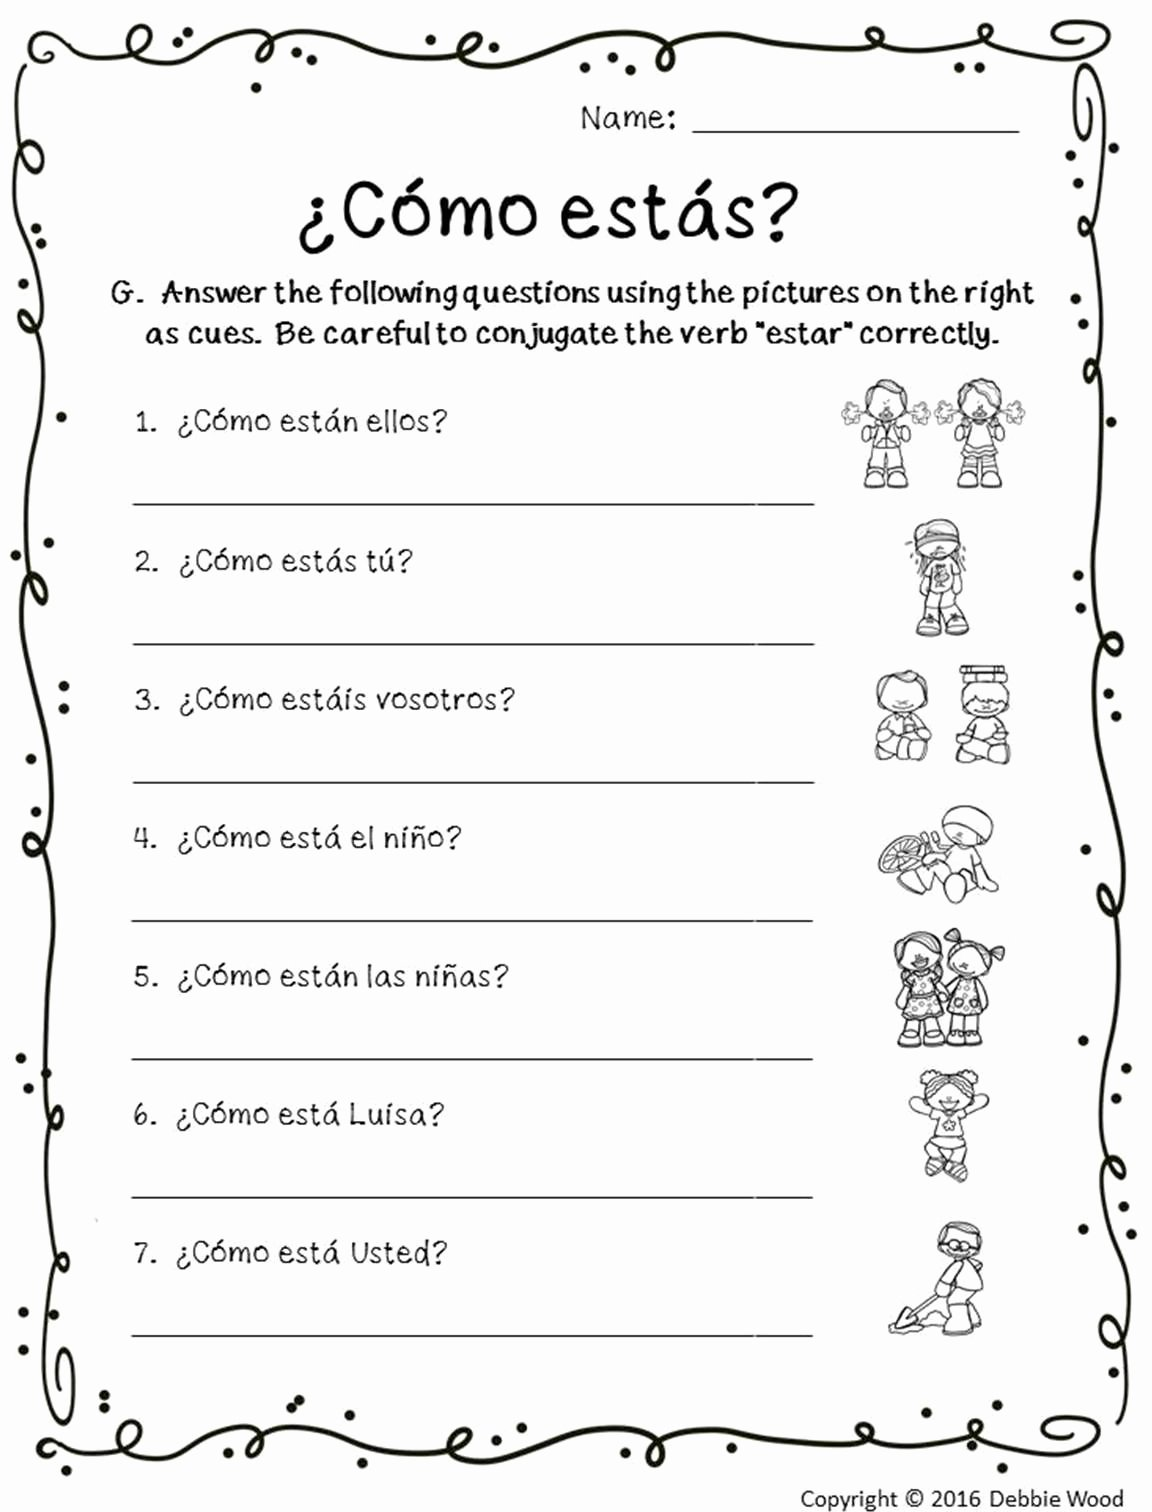 Reflexive Verbs Spanish Worksheet Inspirational Spanish Reflexive Verb Worksheet